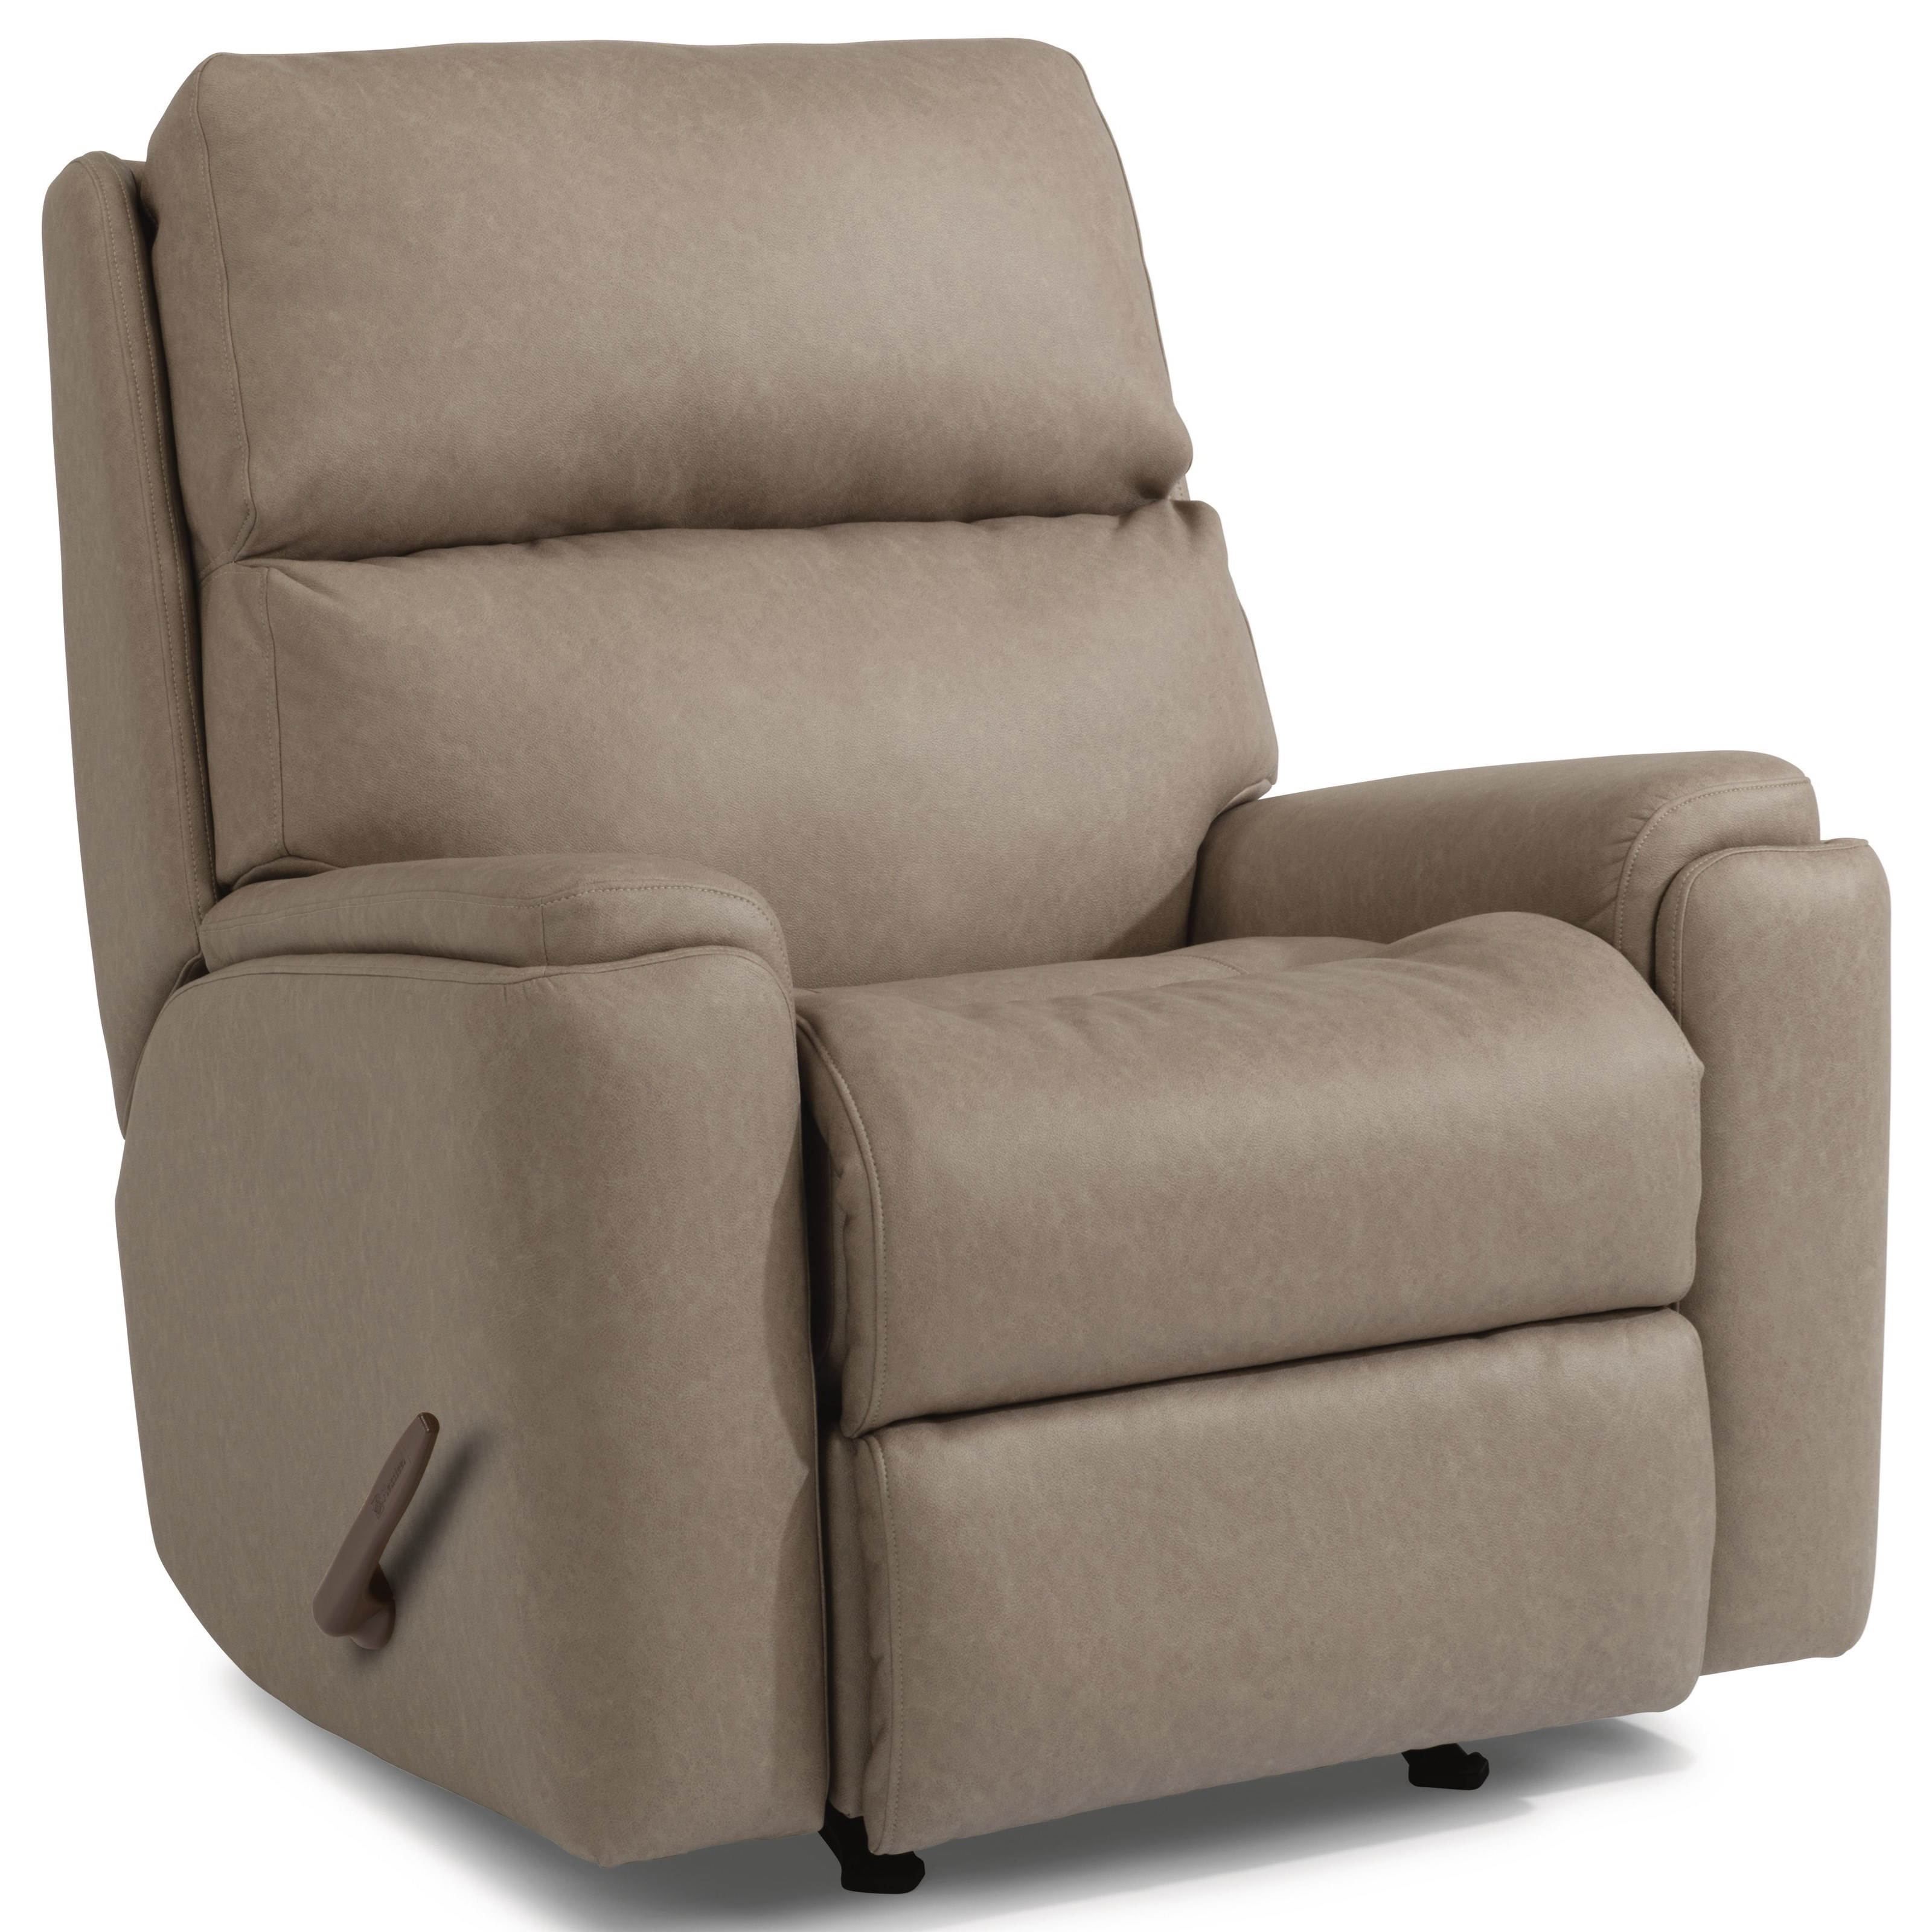 Rio Swivel Gliding Recliner by Flexsteel at Jordan's Home Furnishings